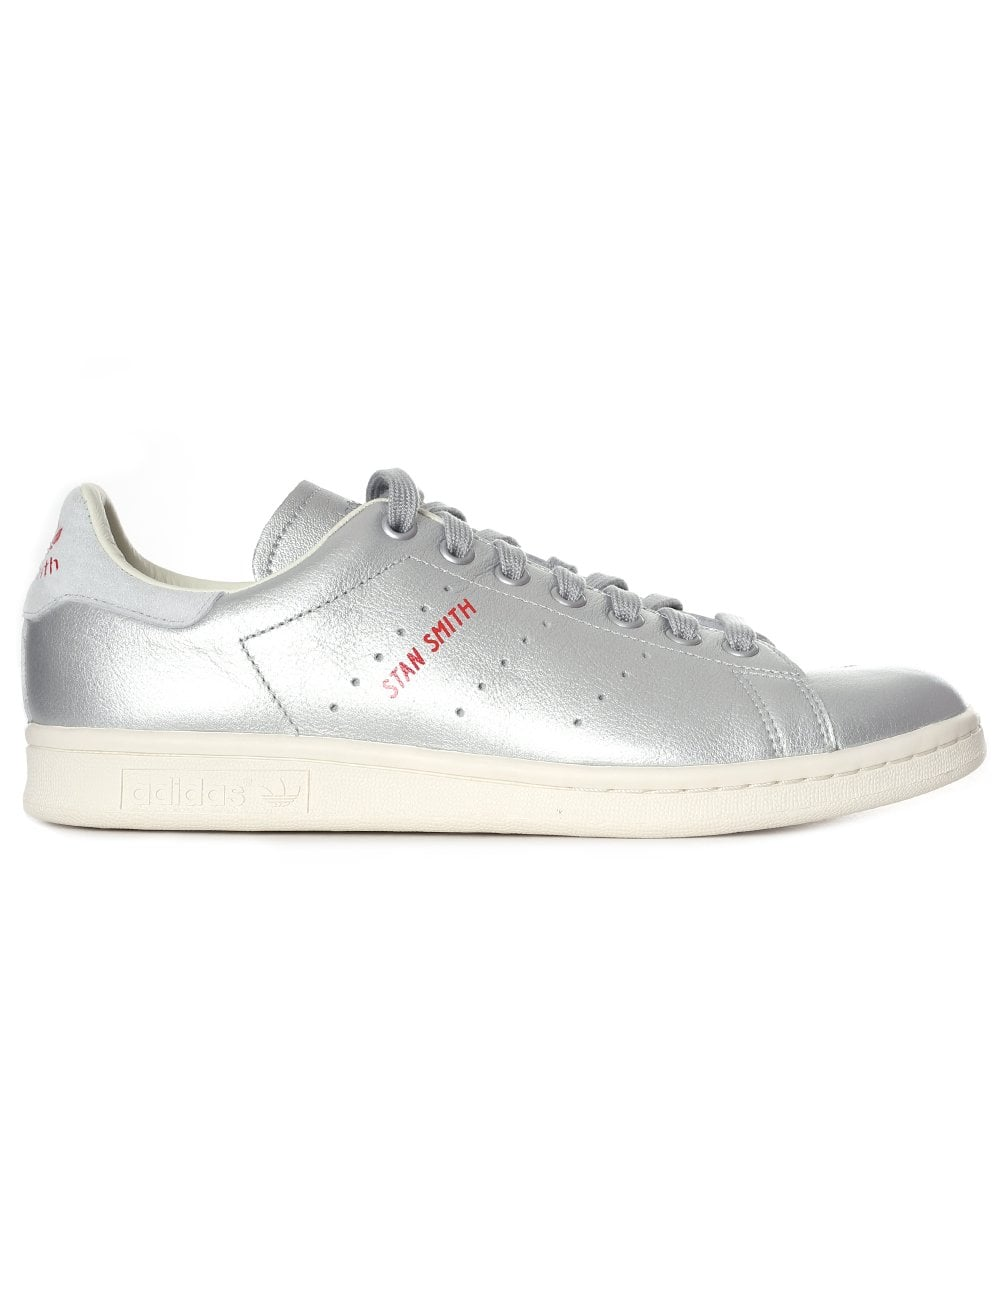 outlet store b2edd d1211 Adidas Women's Stan Smith Trainer